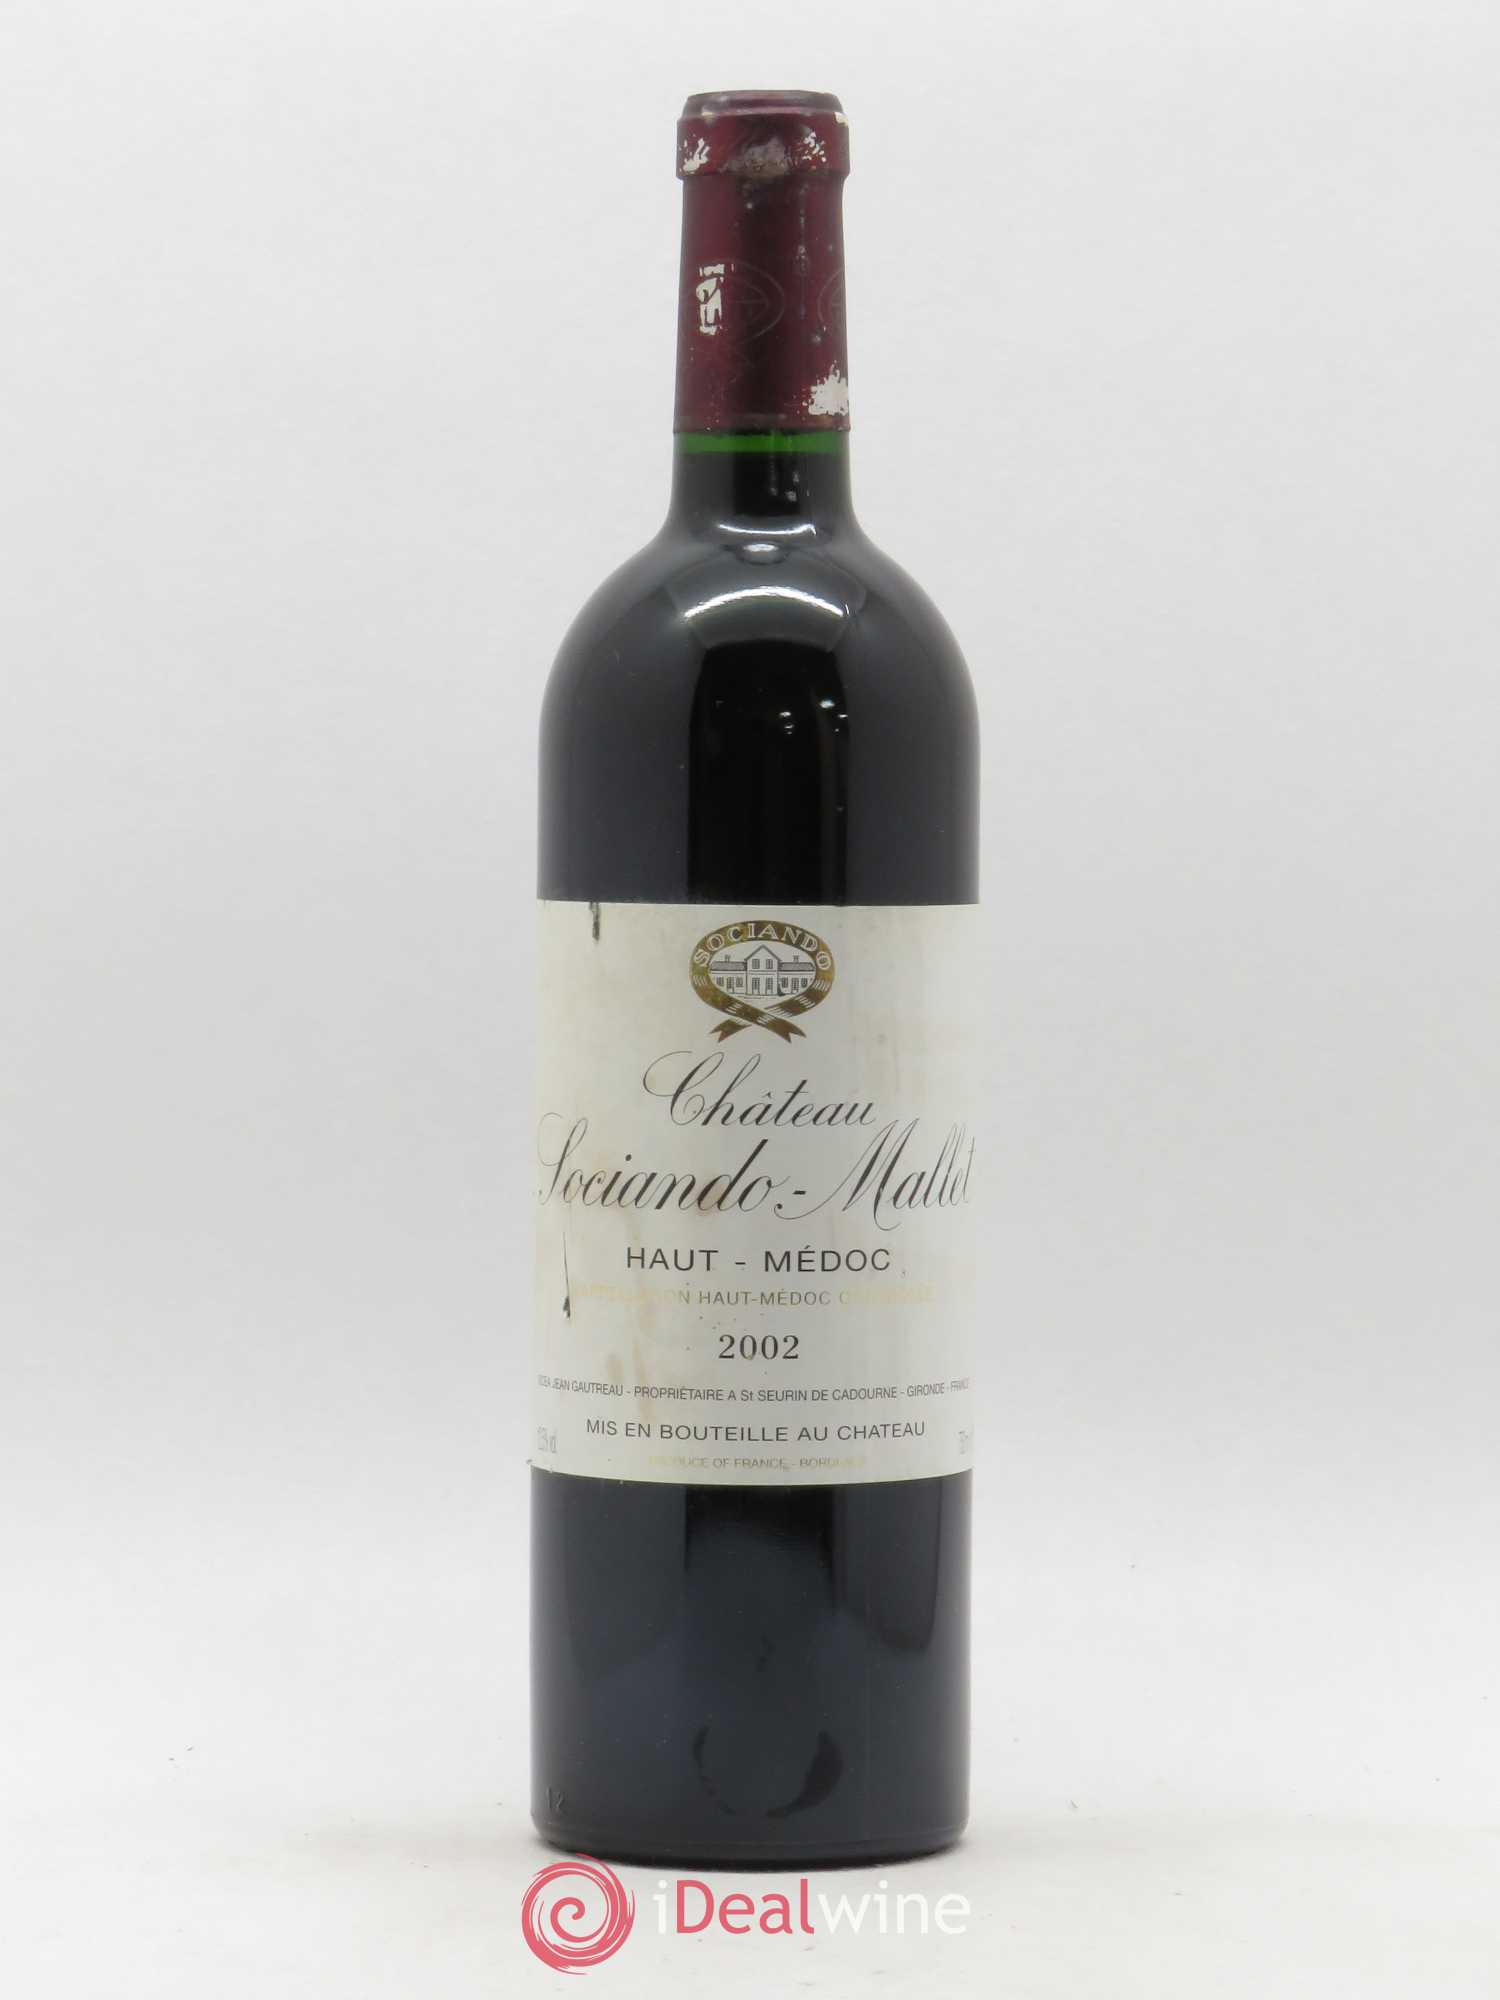 Château Sociando Mallet  2002 - Lot of 1 Bottle